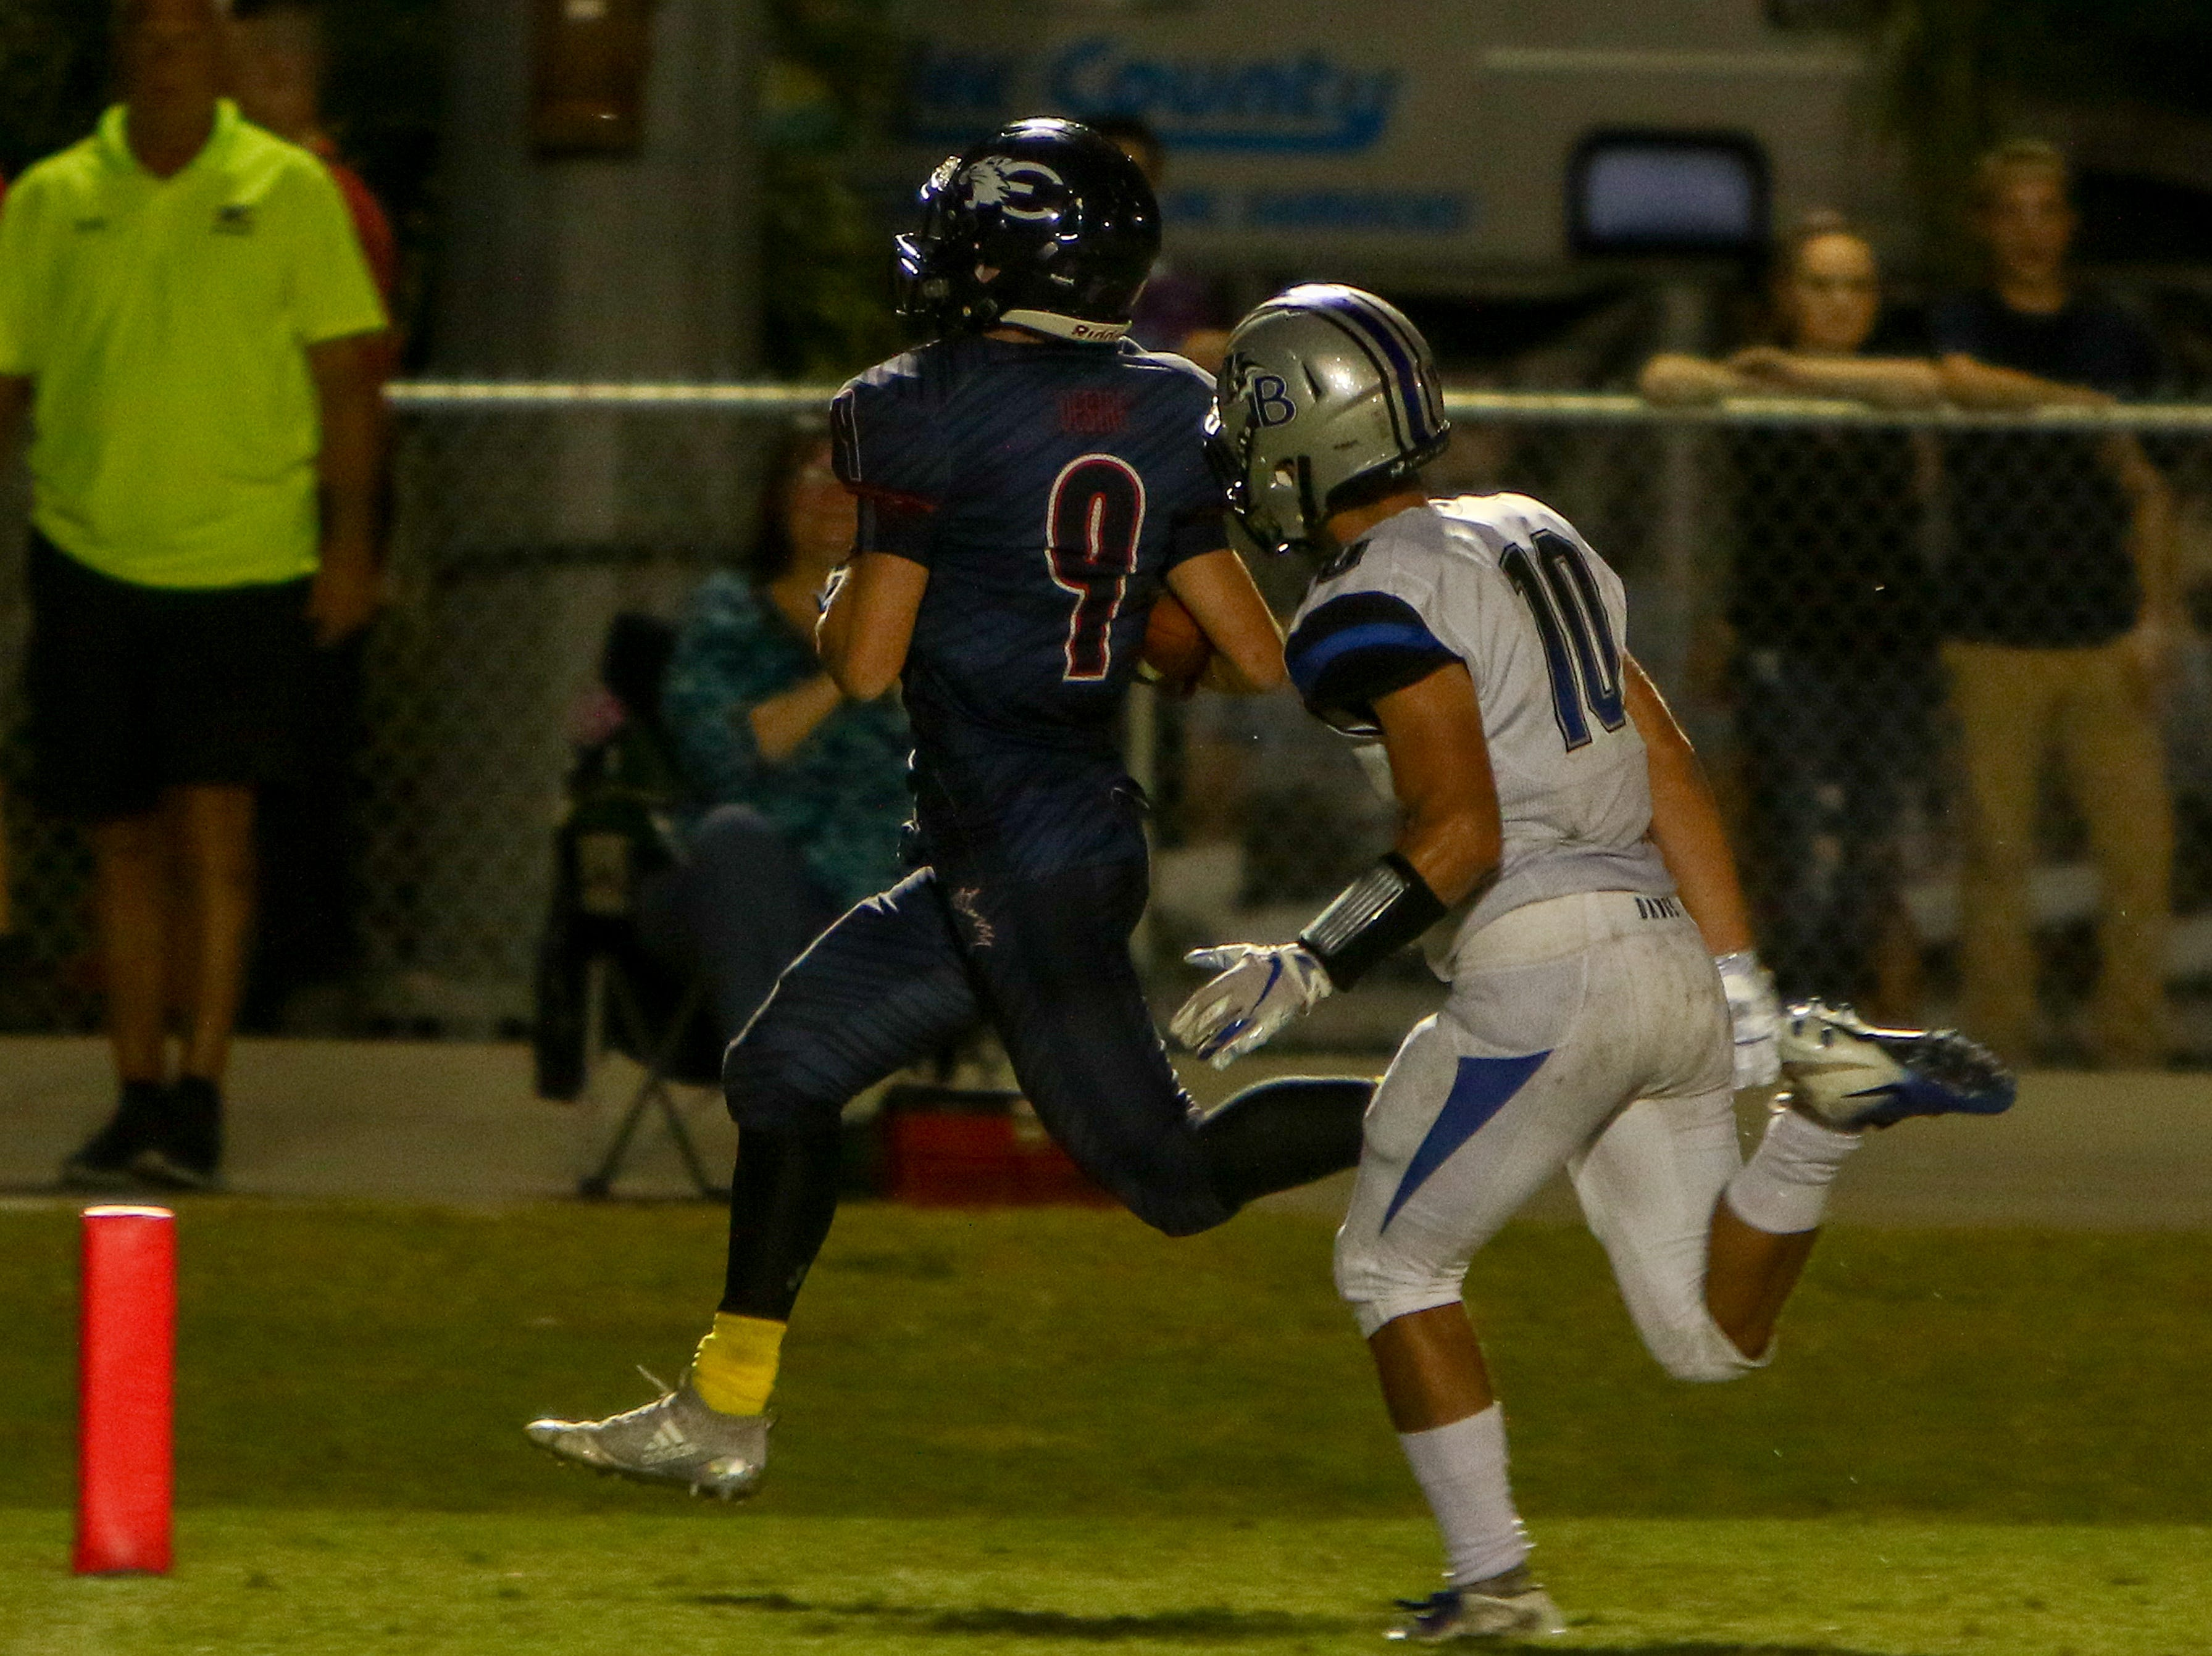 Estero running back Ethan Montgomery busts a long run down the sidelines and beats Bulldog safety Kaeden Price to the end zone.